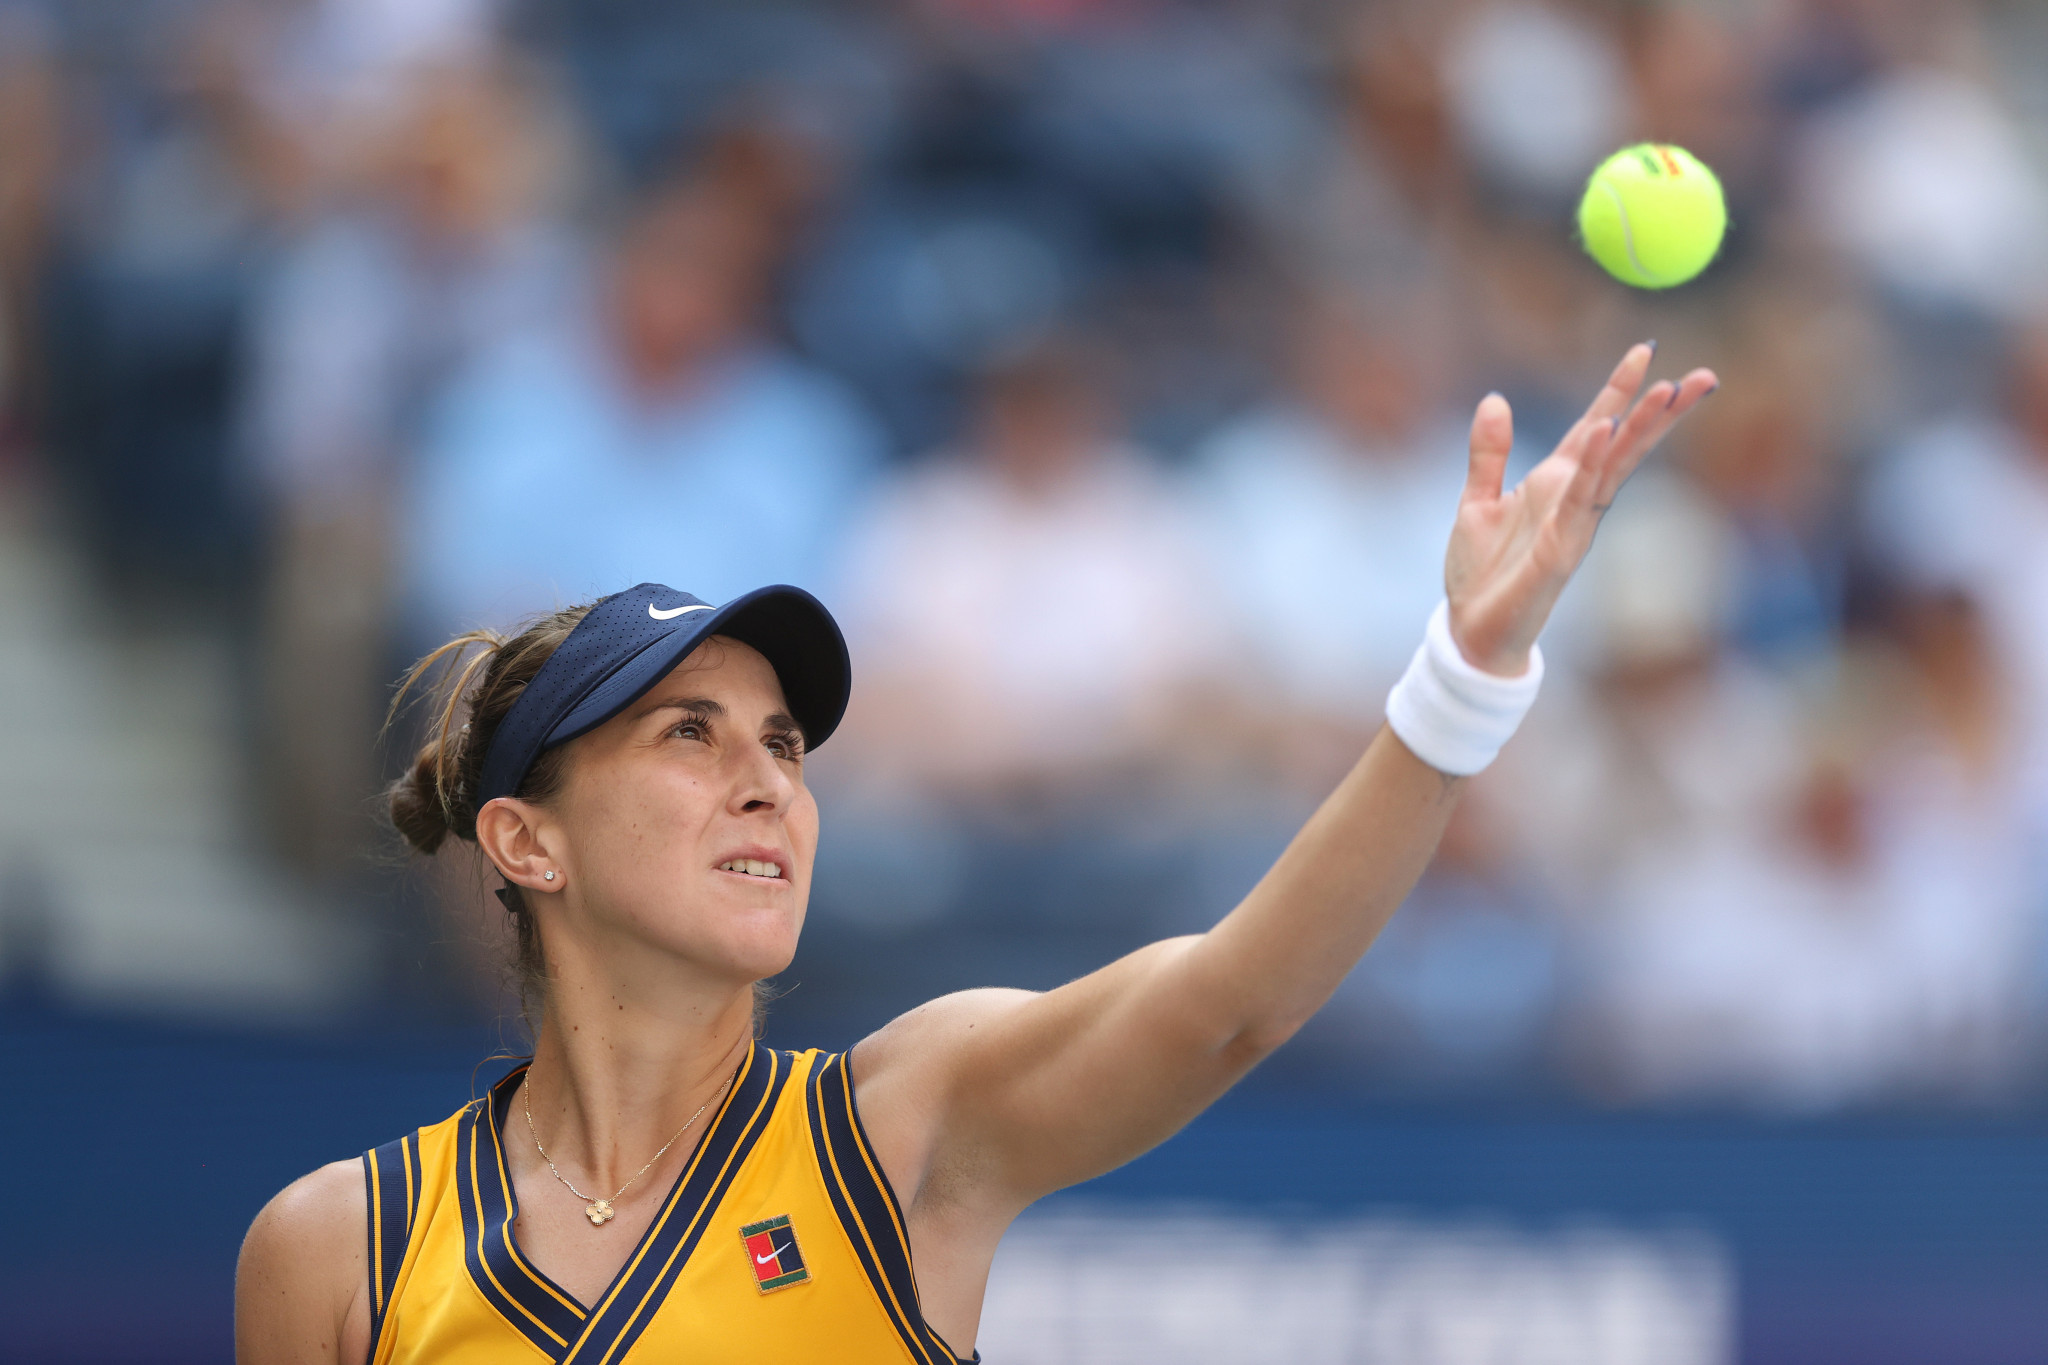 For Switzerland's Bencic - the Olympic champion - the wait for a maiden Grand Slam title goes on, with this the third time she has reached the US Open last eight ©Getty Images